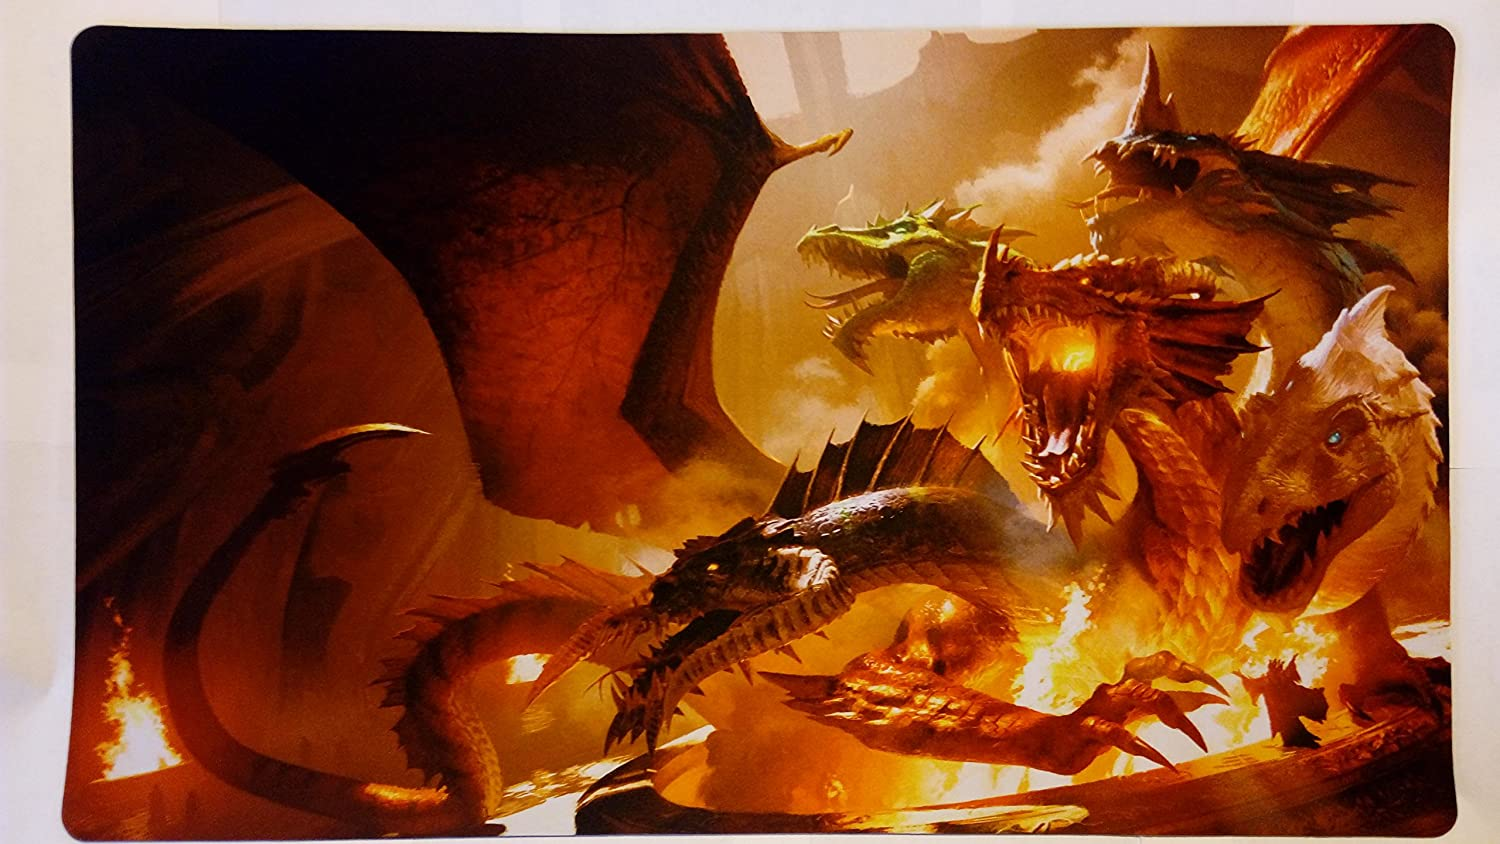 gamemat 24 wide 14 tall for trading card game smooth cloth surface rubber base Five headed Dragon TCG playmat